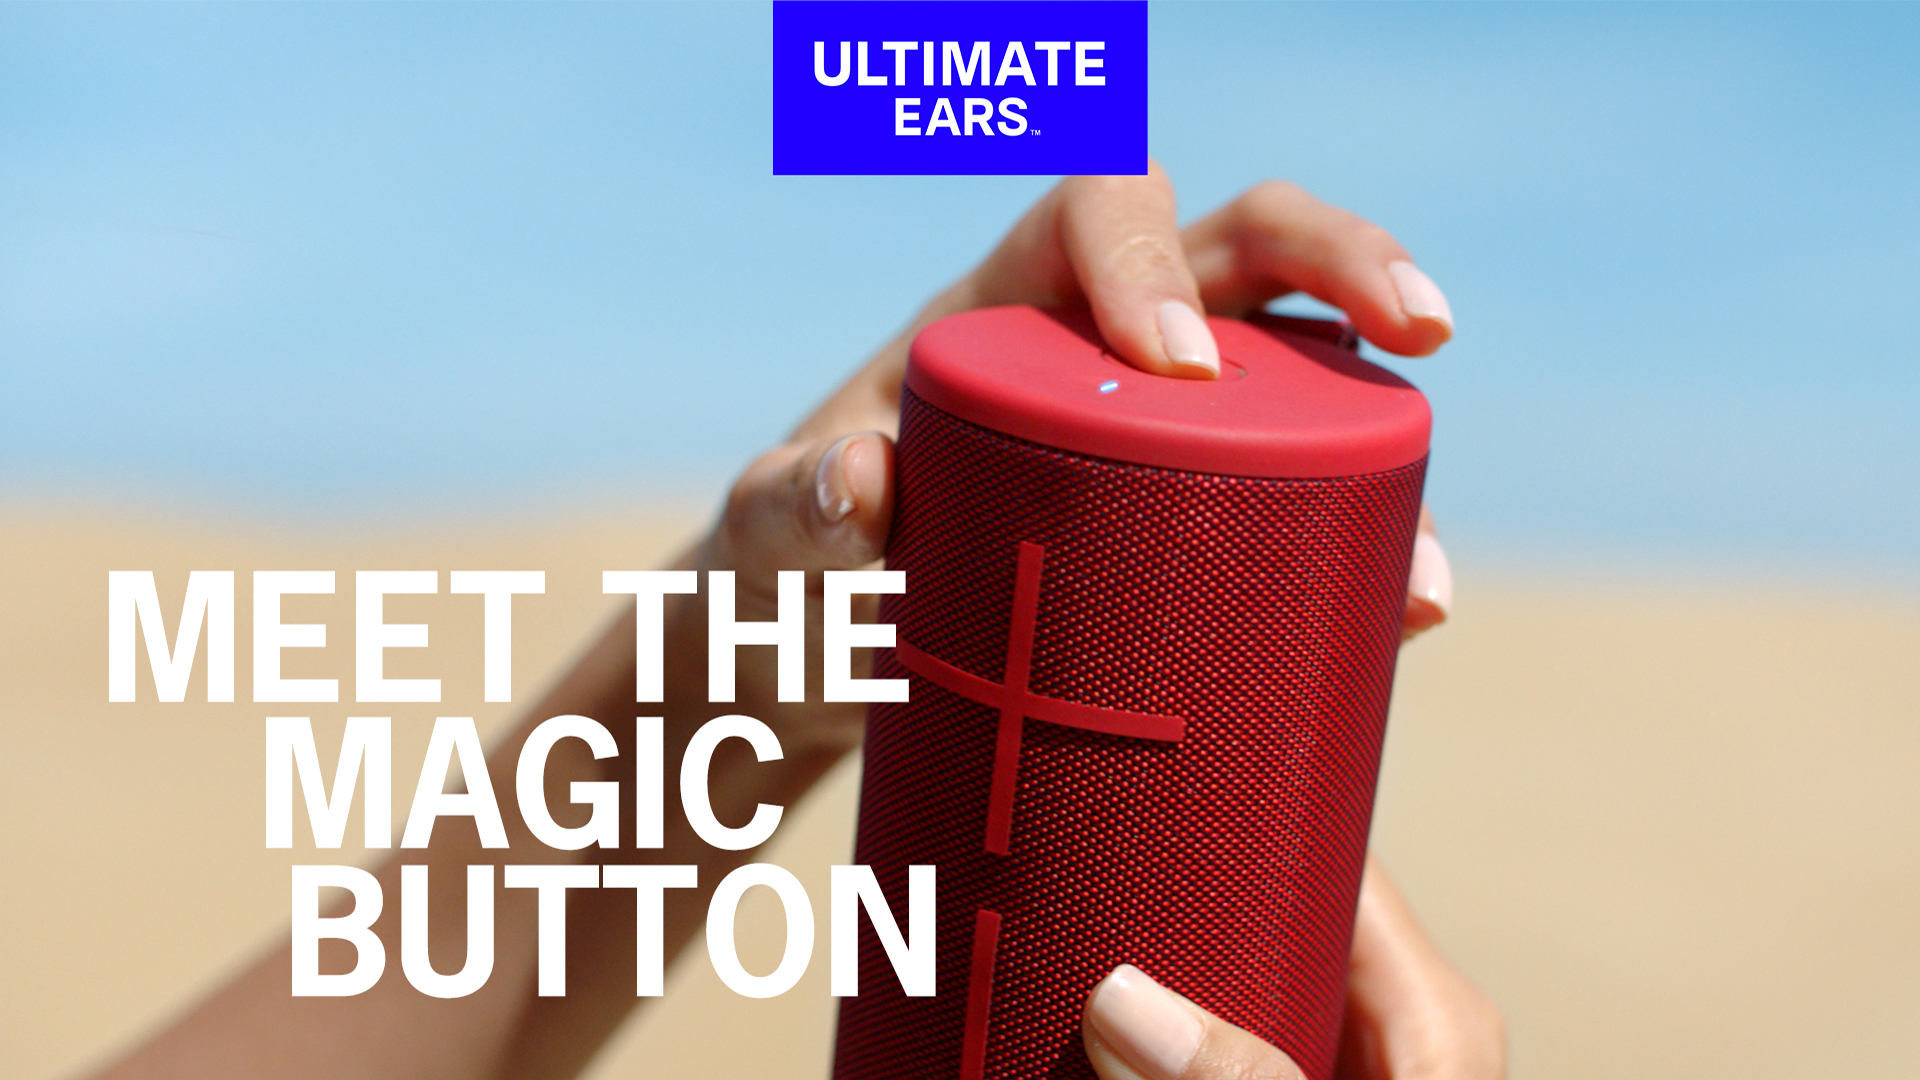 ultimate ears magic button